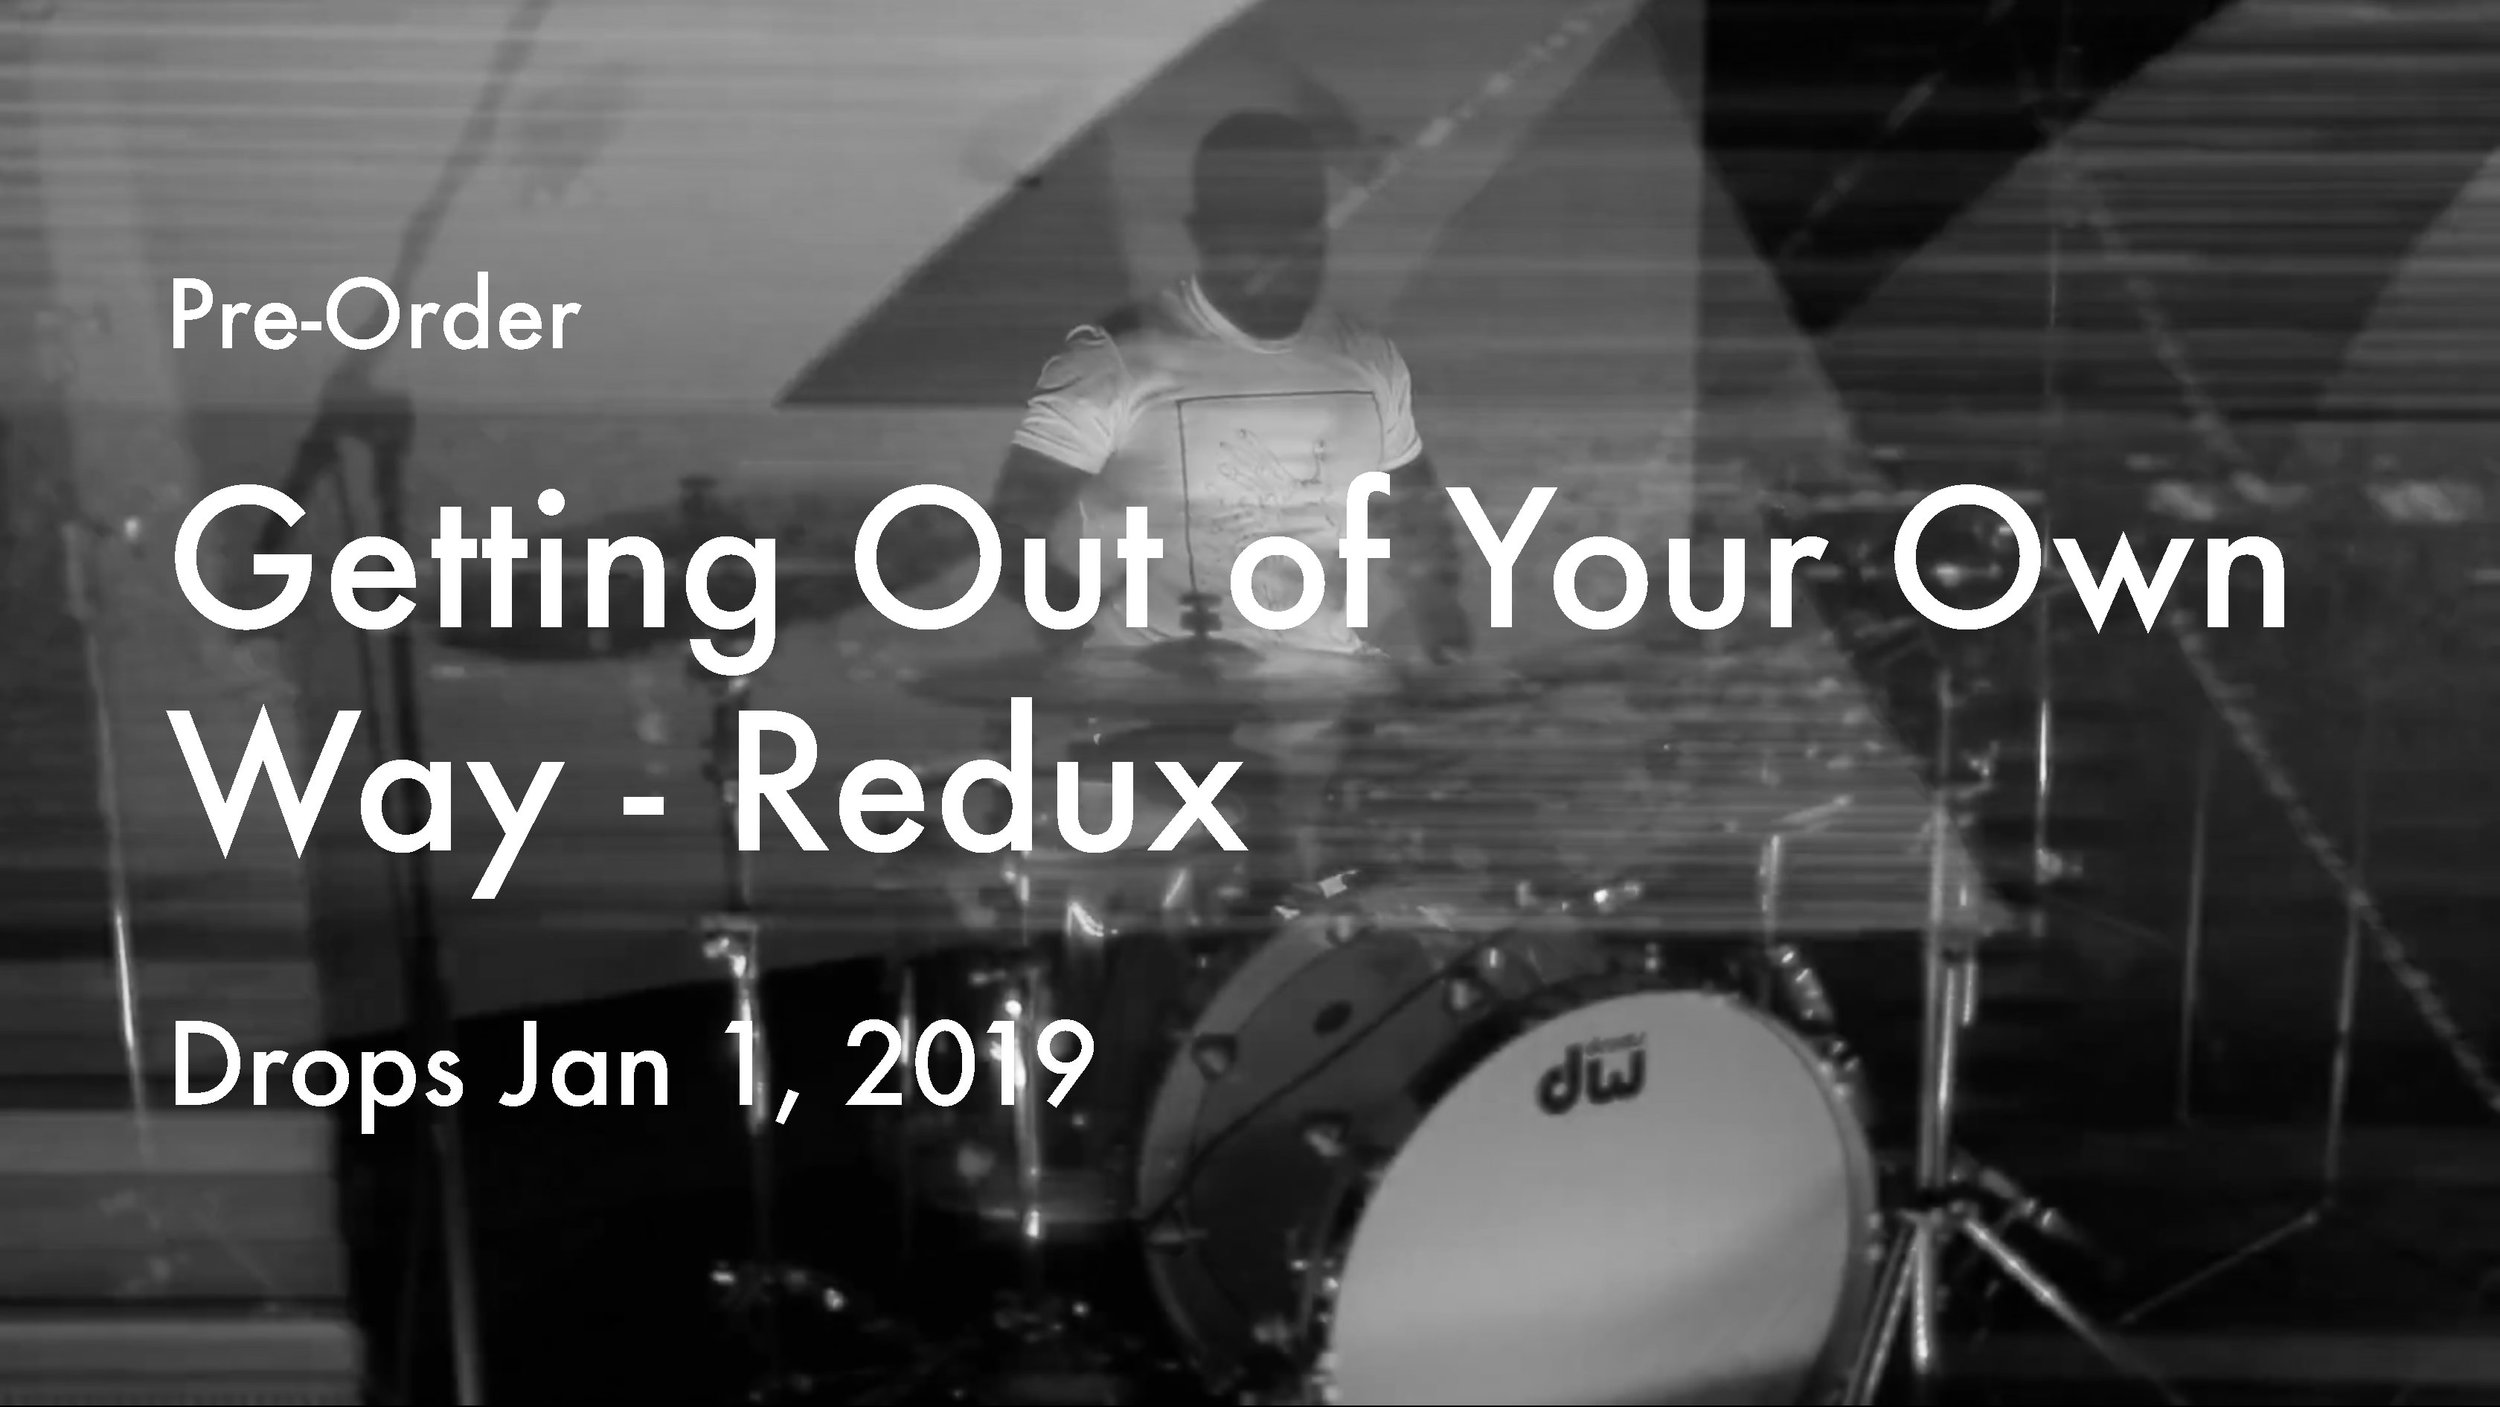 Getting Out of Your Own Way - reduxPre-order HERE! -